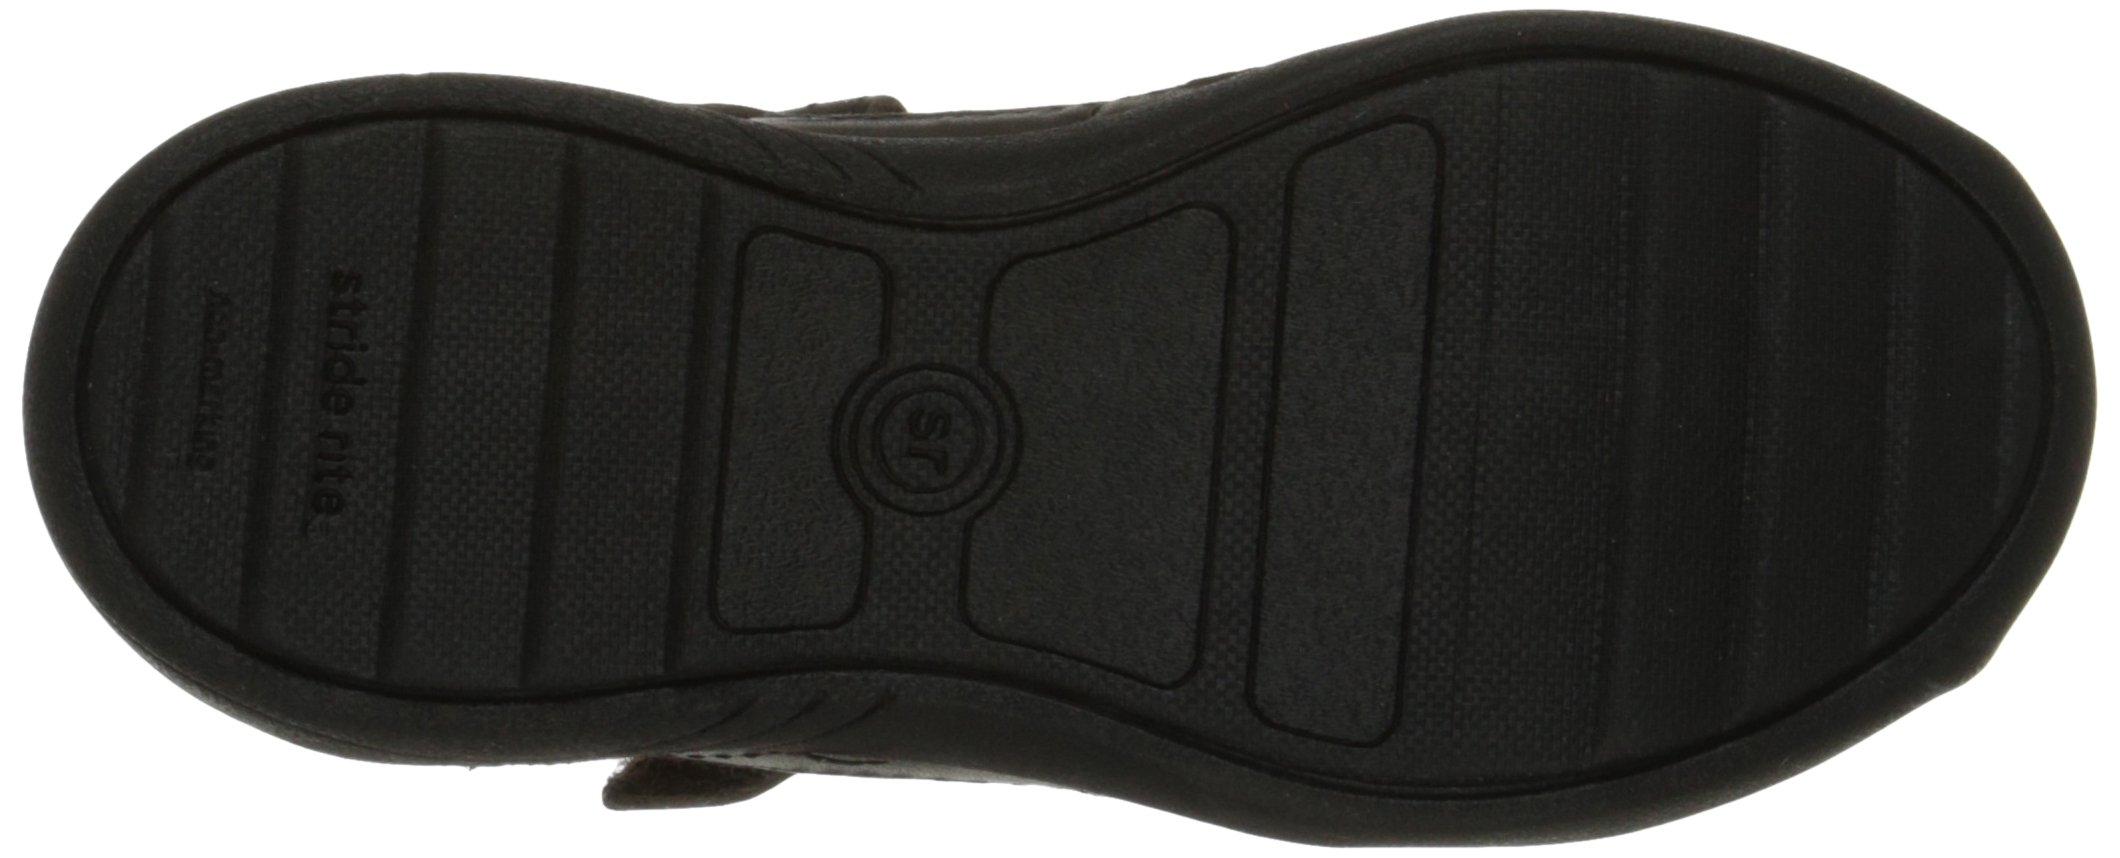 Stride Rite Claire Mary Jane (Toddler/Little Kid/Big Kid),Brown,13 M US Little Kid by Stride Rite (Image #3)